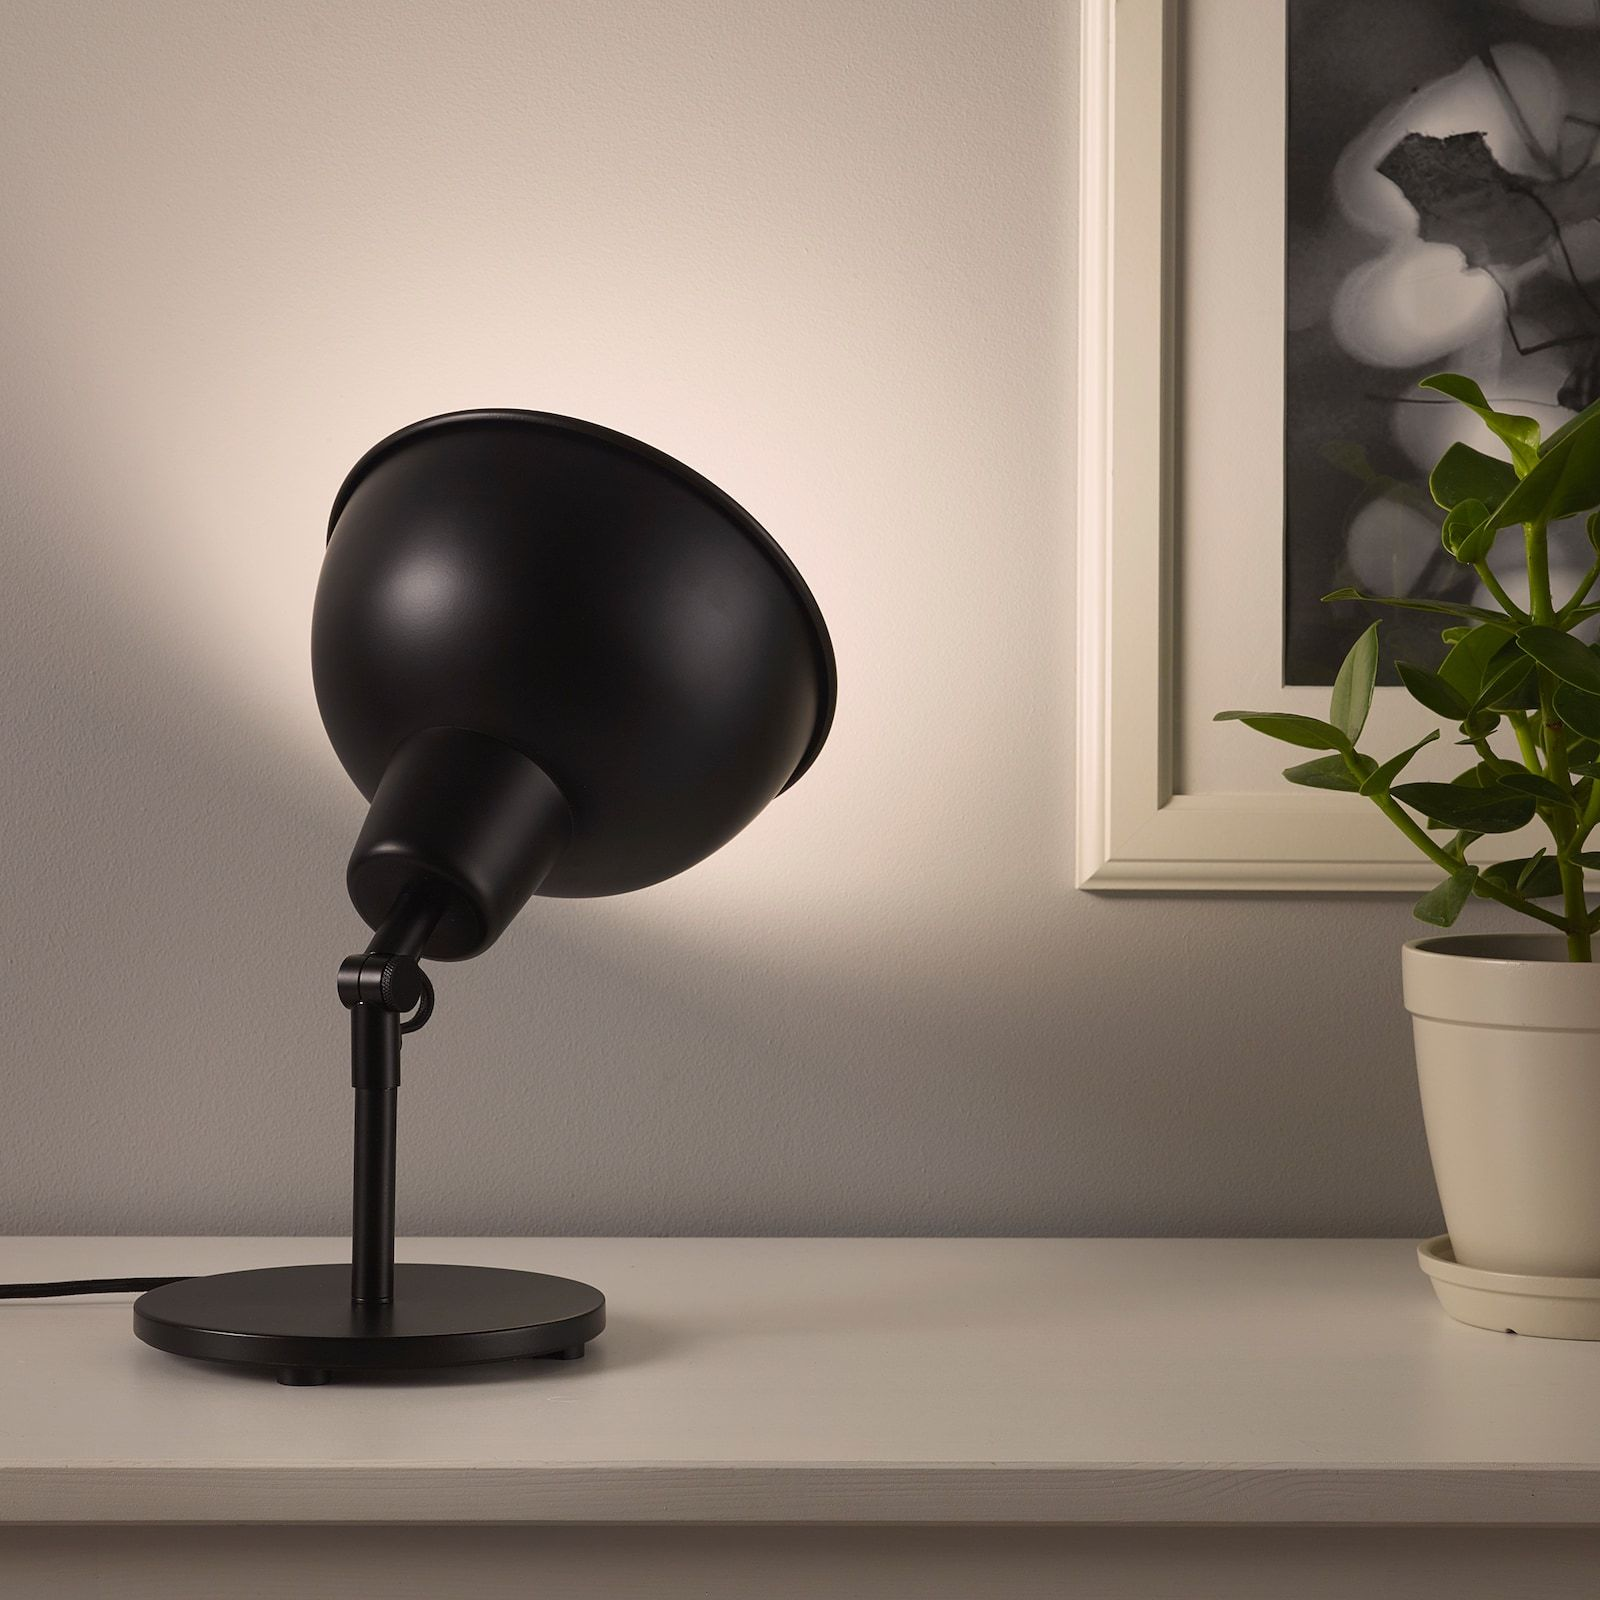 SKURUP Table/wall uplight with LED bulb, black IKEA in